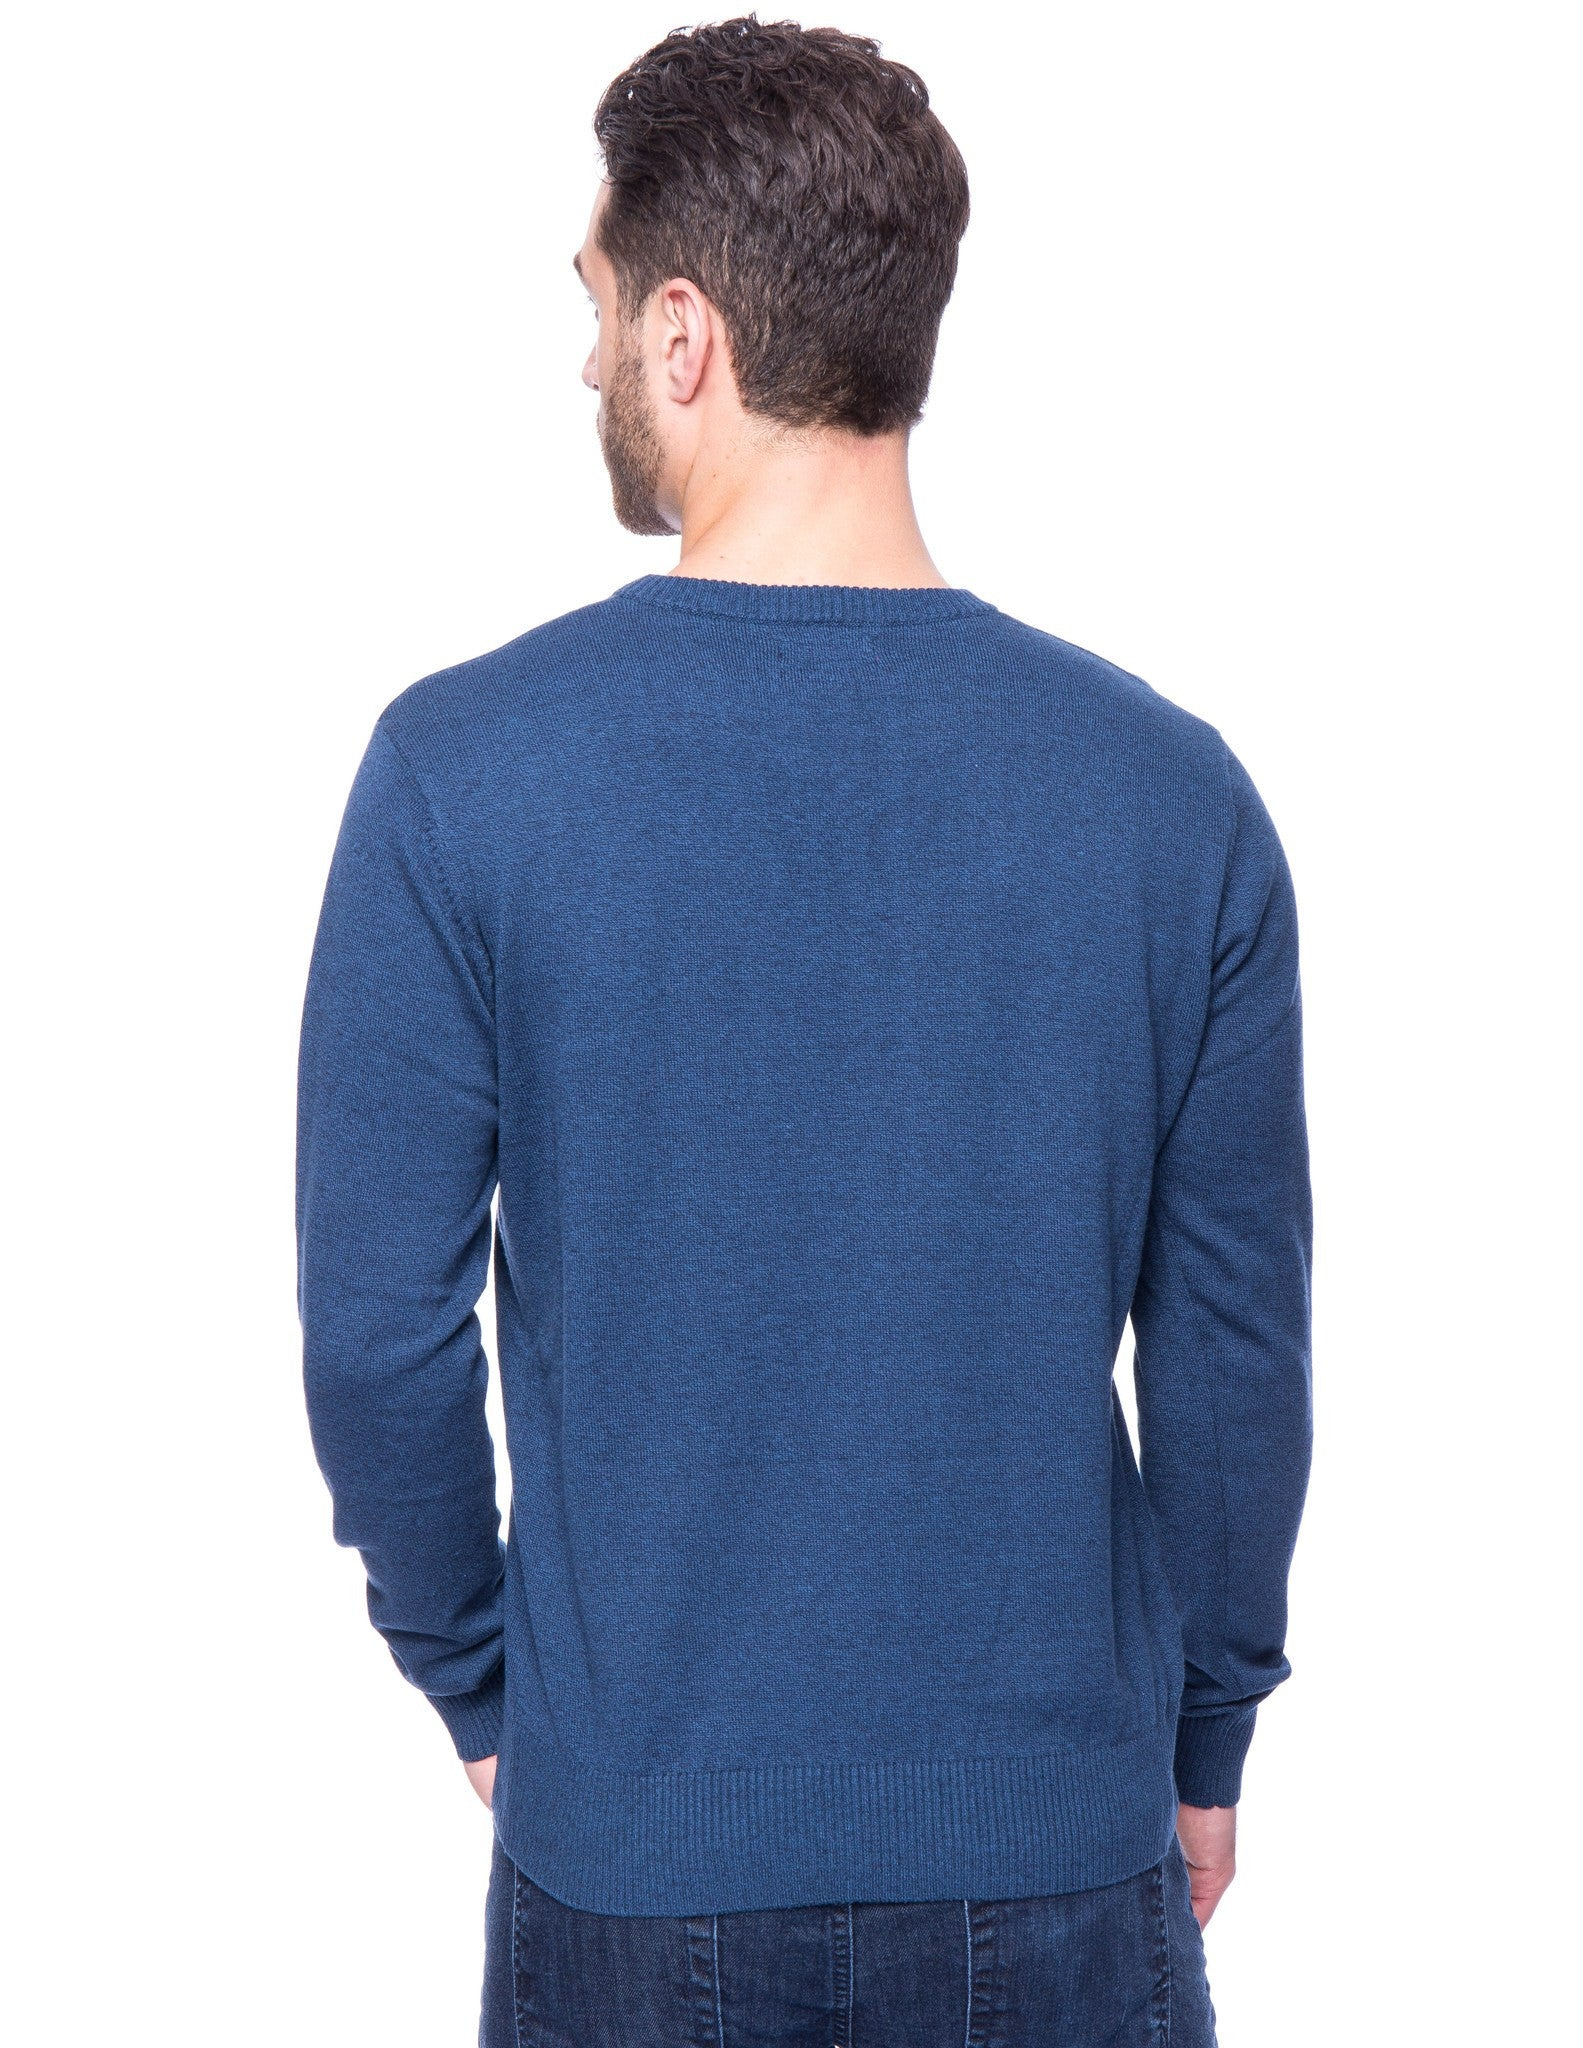 Cotton Crew Neck Sweater - Marl Navy/Teal